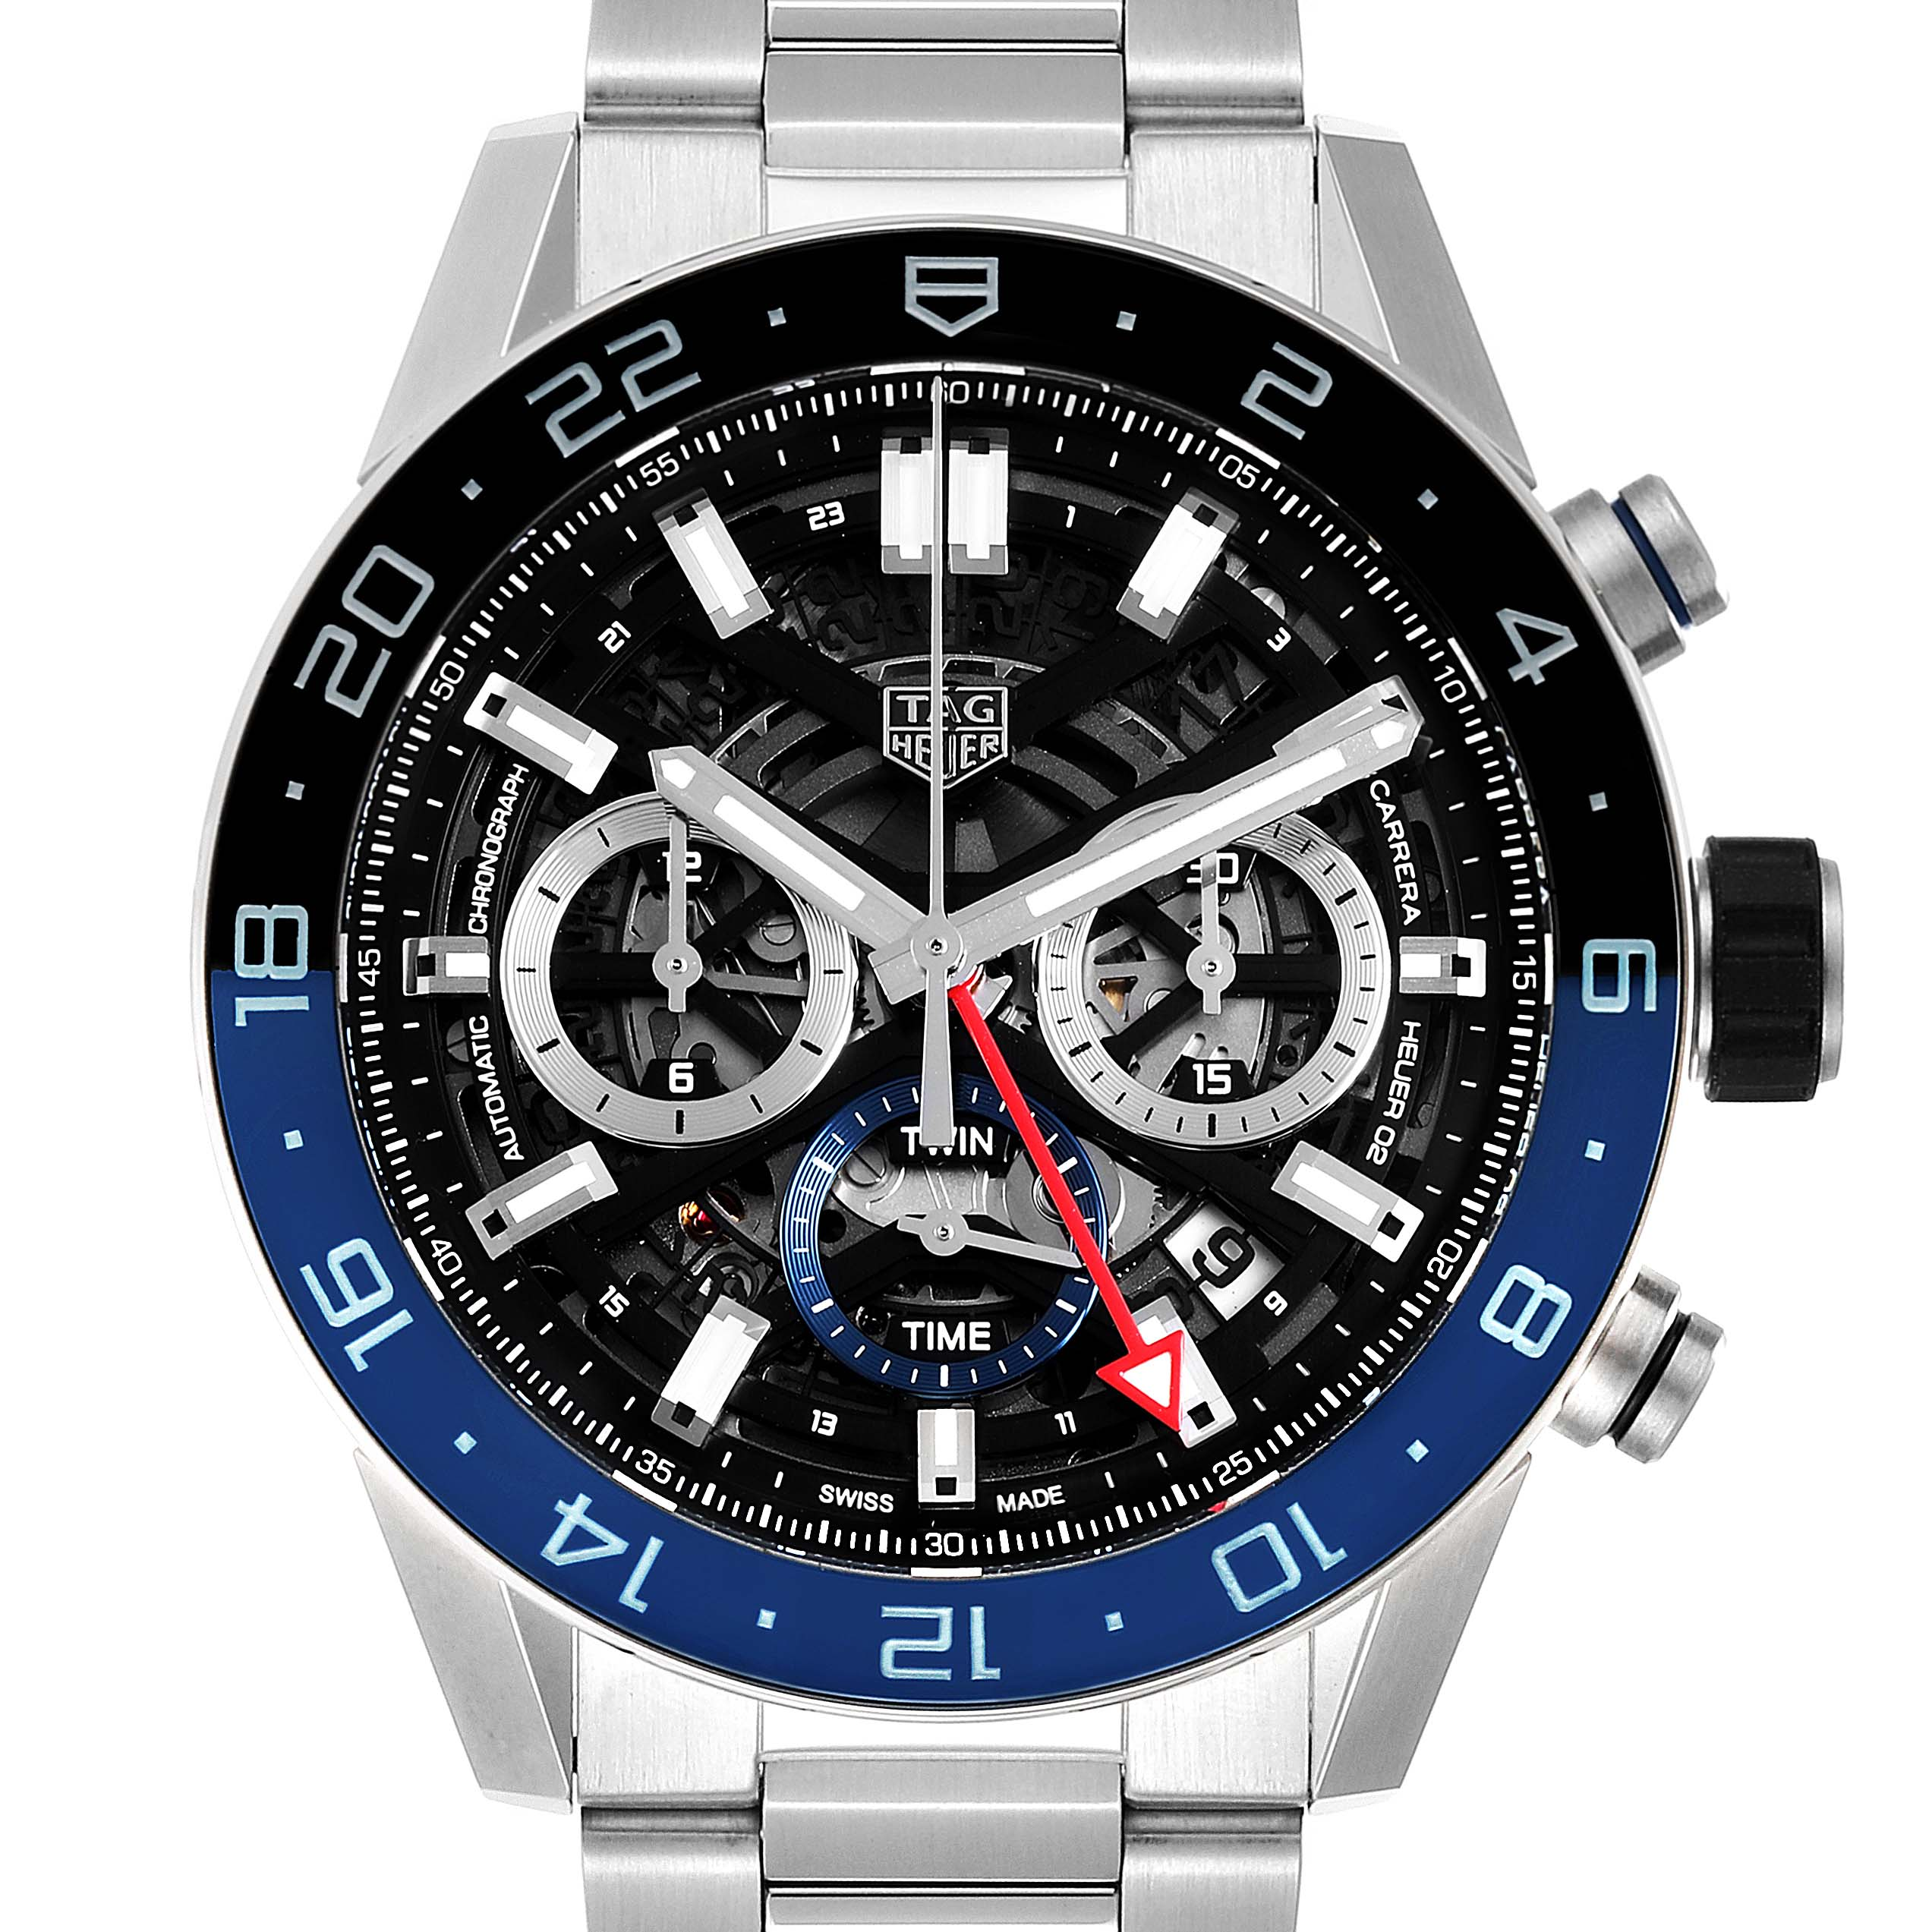 Tag Heuer Carrera Batman Bezel Chronograph Mens Watch CBG2A1Z Box Card